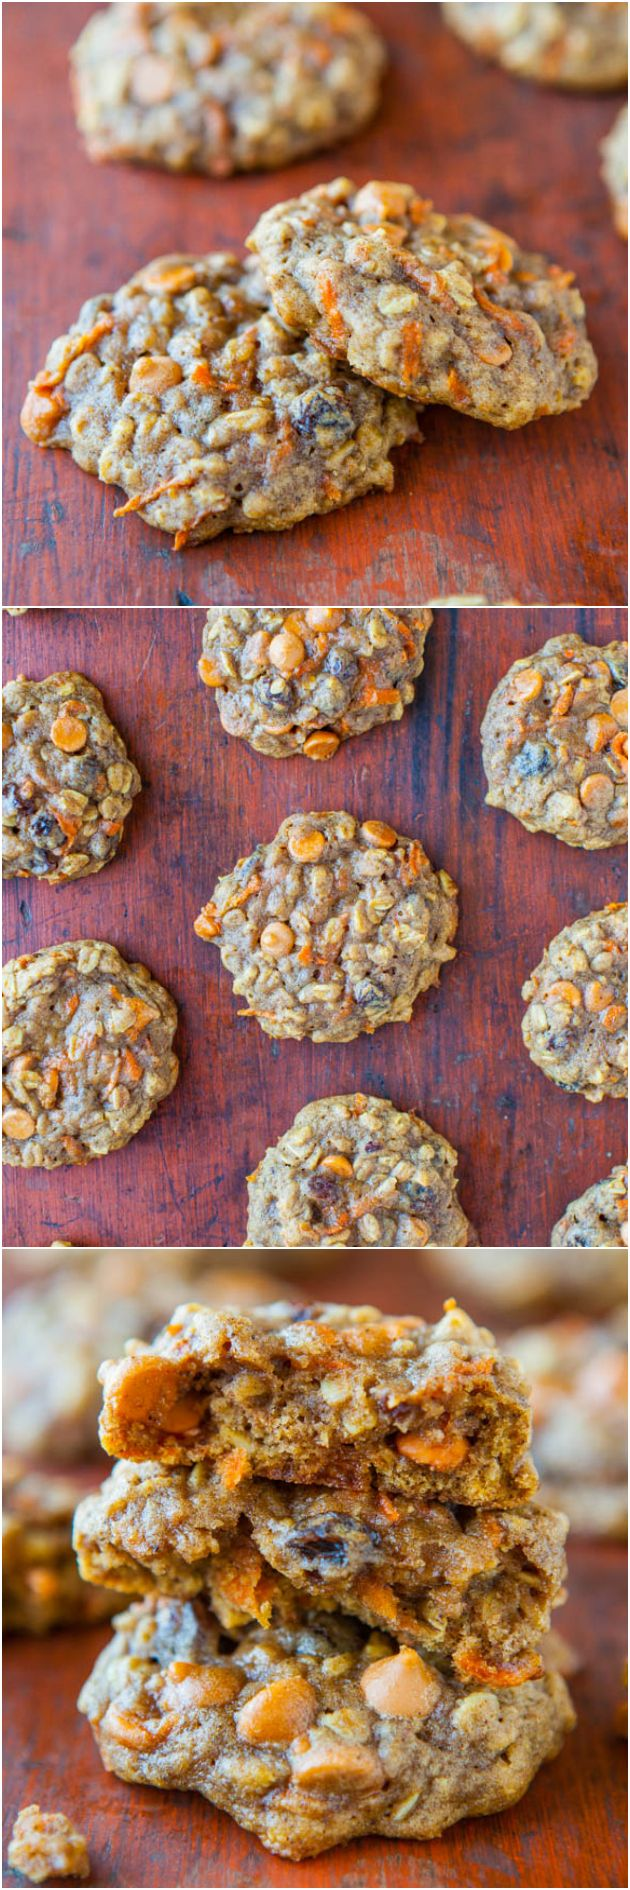 Soft and Chewy Spiced Carrot Cake Cookies  by averiecooks: Tons of texture and so moist with zero cakiness. Eat your vegetables by way of healthy cookies! #Cookies #Carrot #Healthy